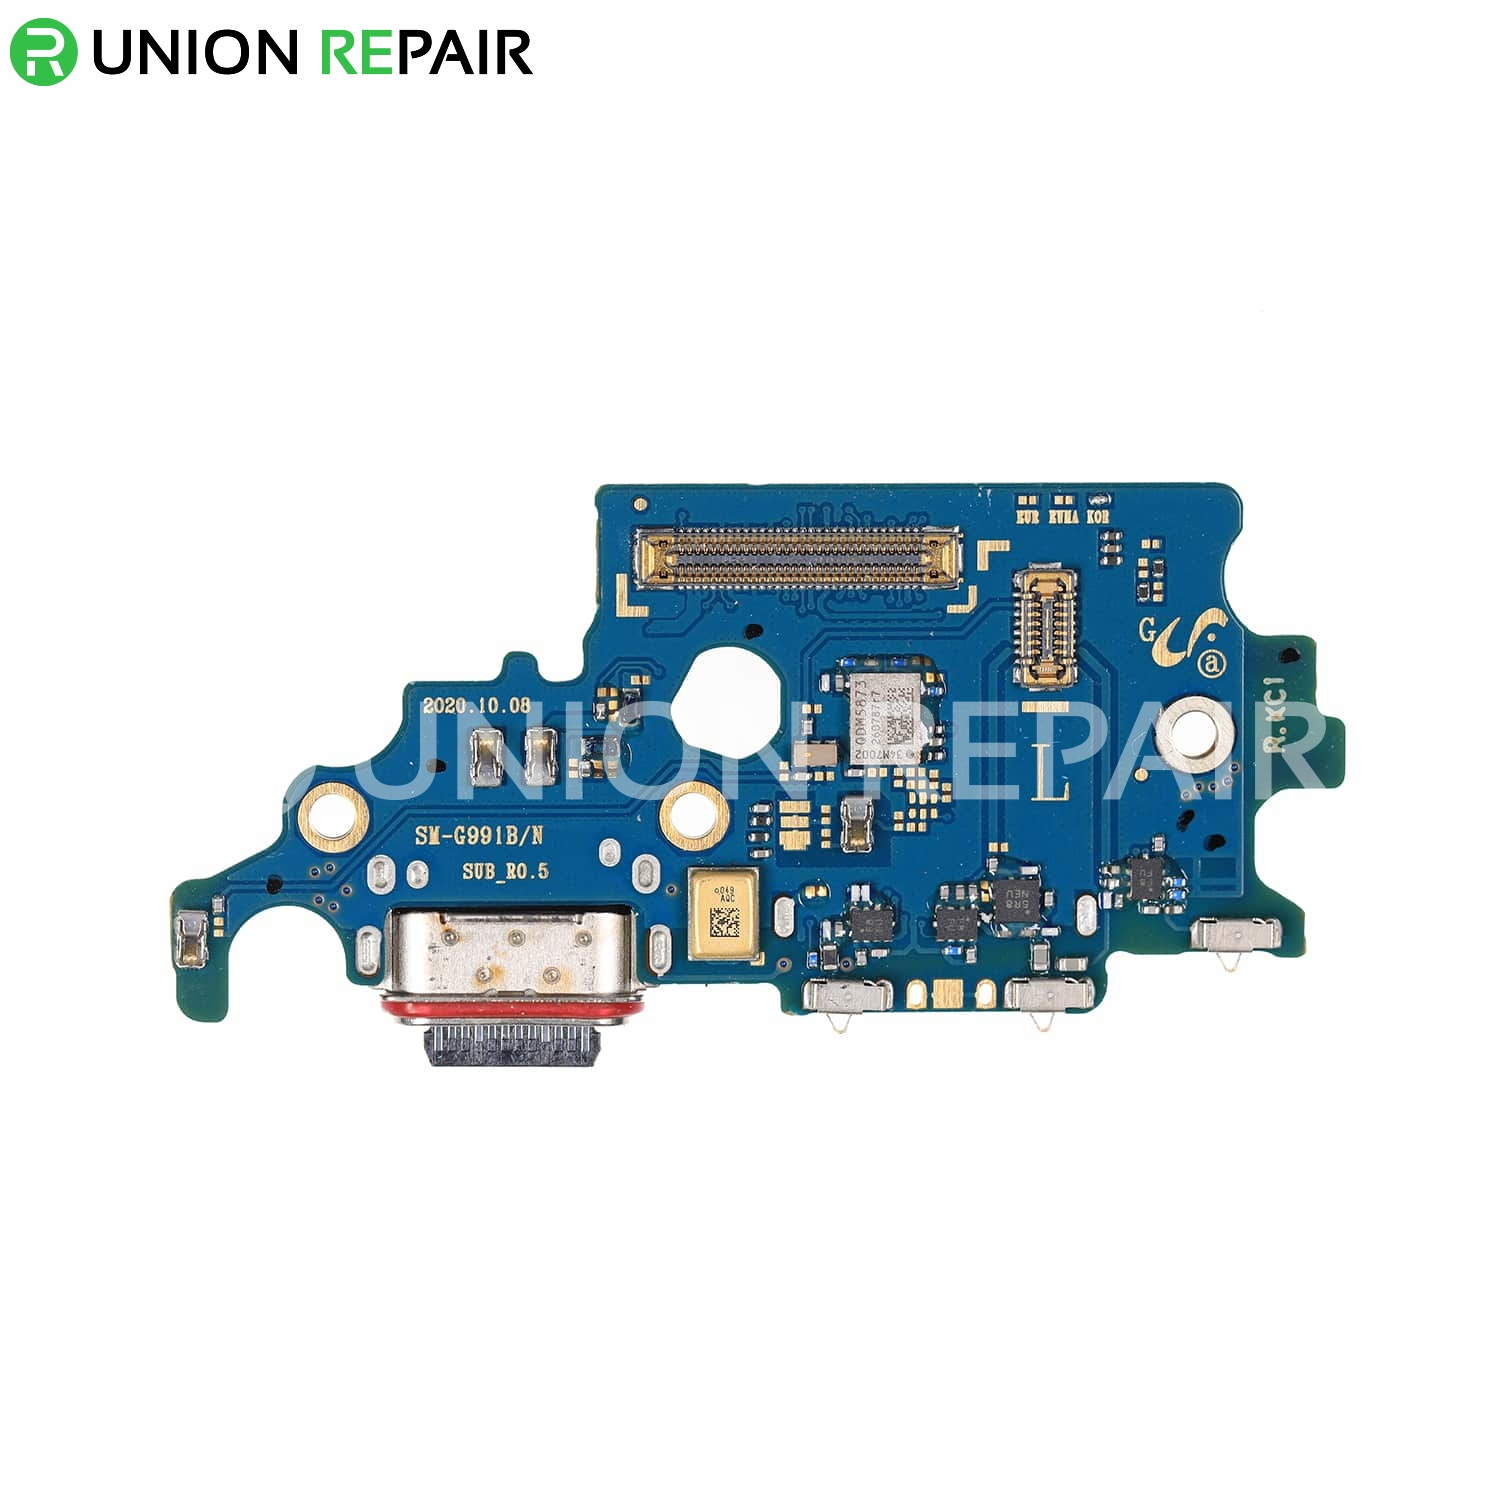 Replacement for Samsung Galaxy S21 SM-G991B/N USB Charging Board